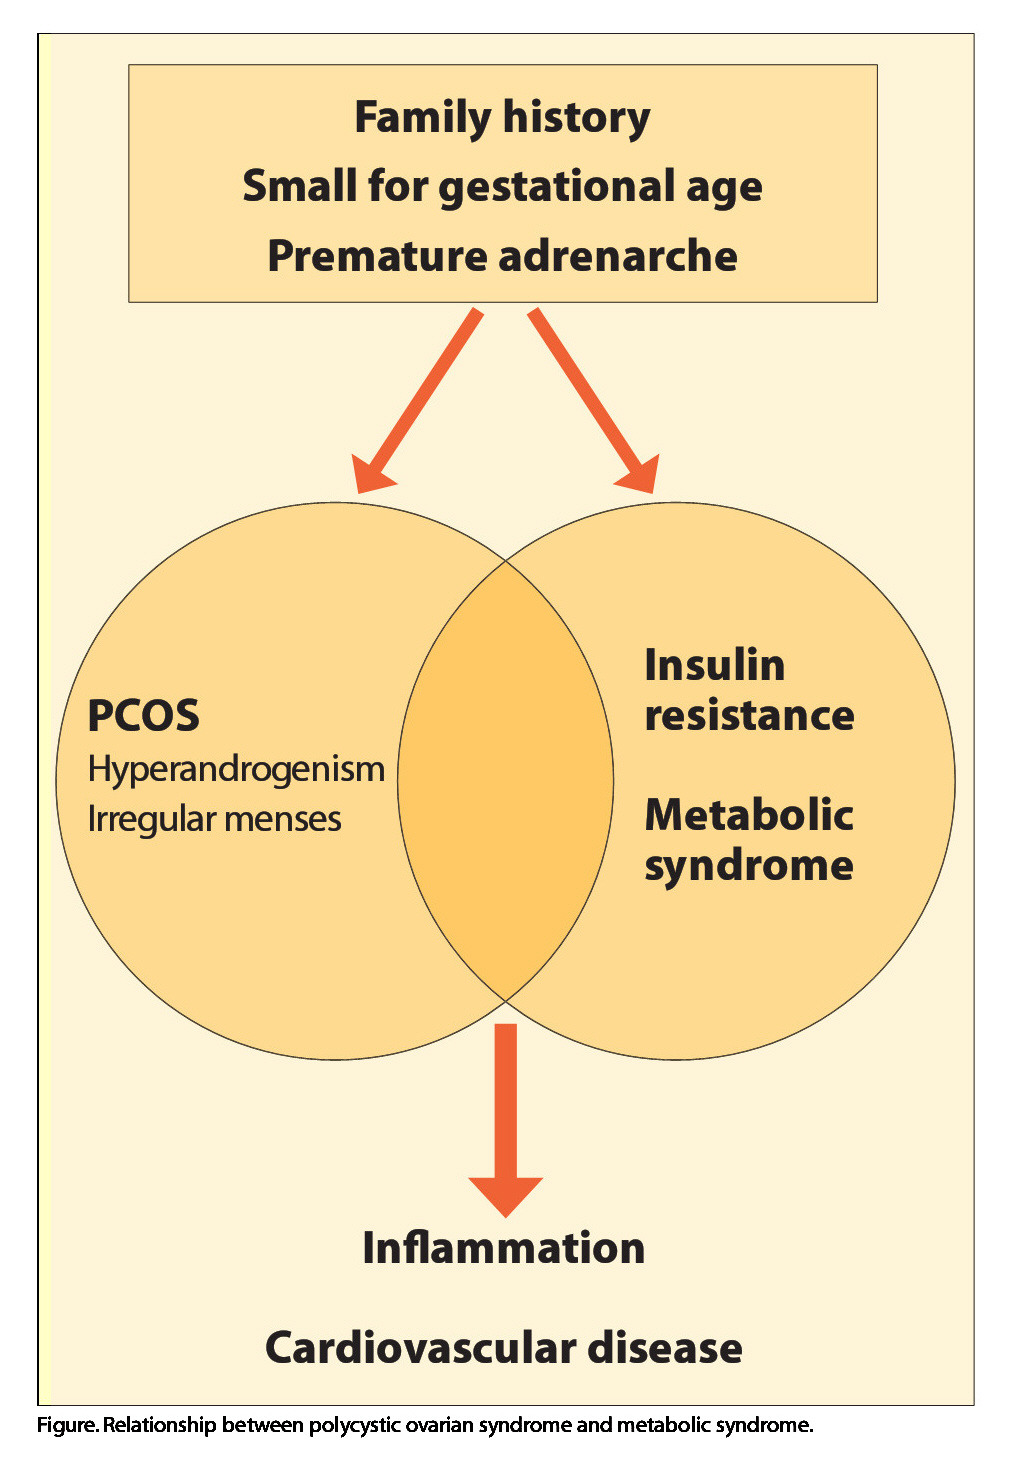 Figure. Relationship between polycystic ovarian syndrome and metabolic syndrome.